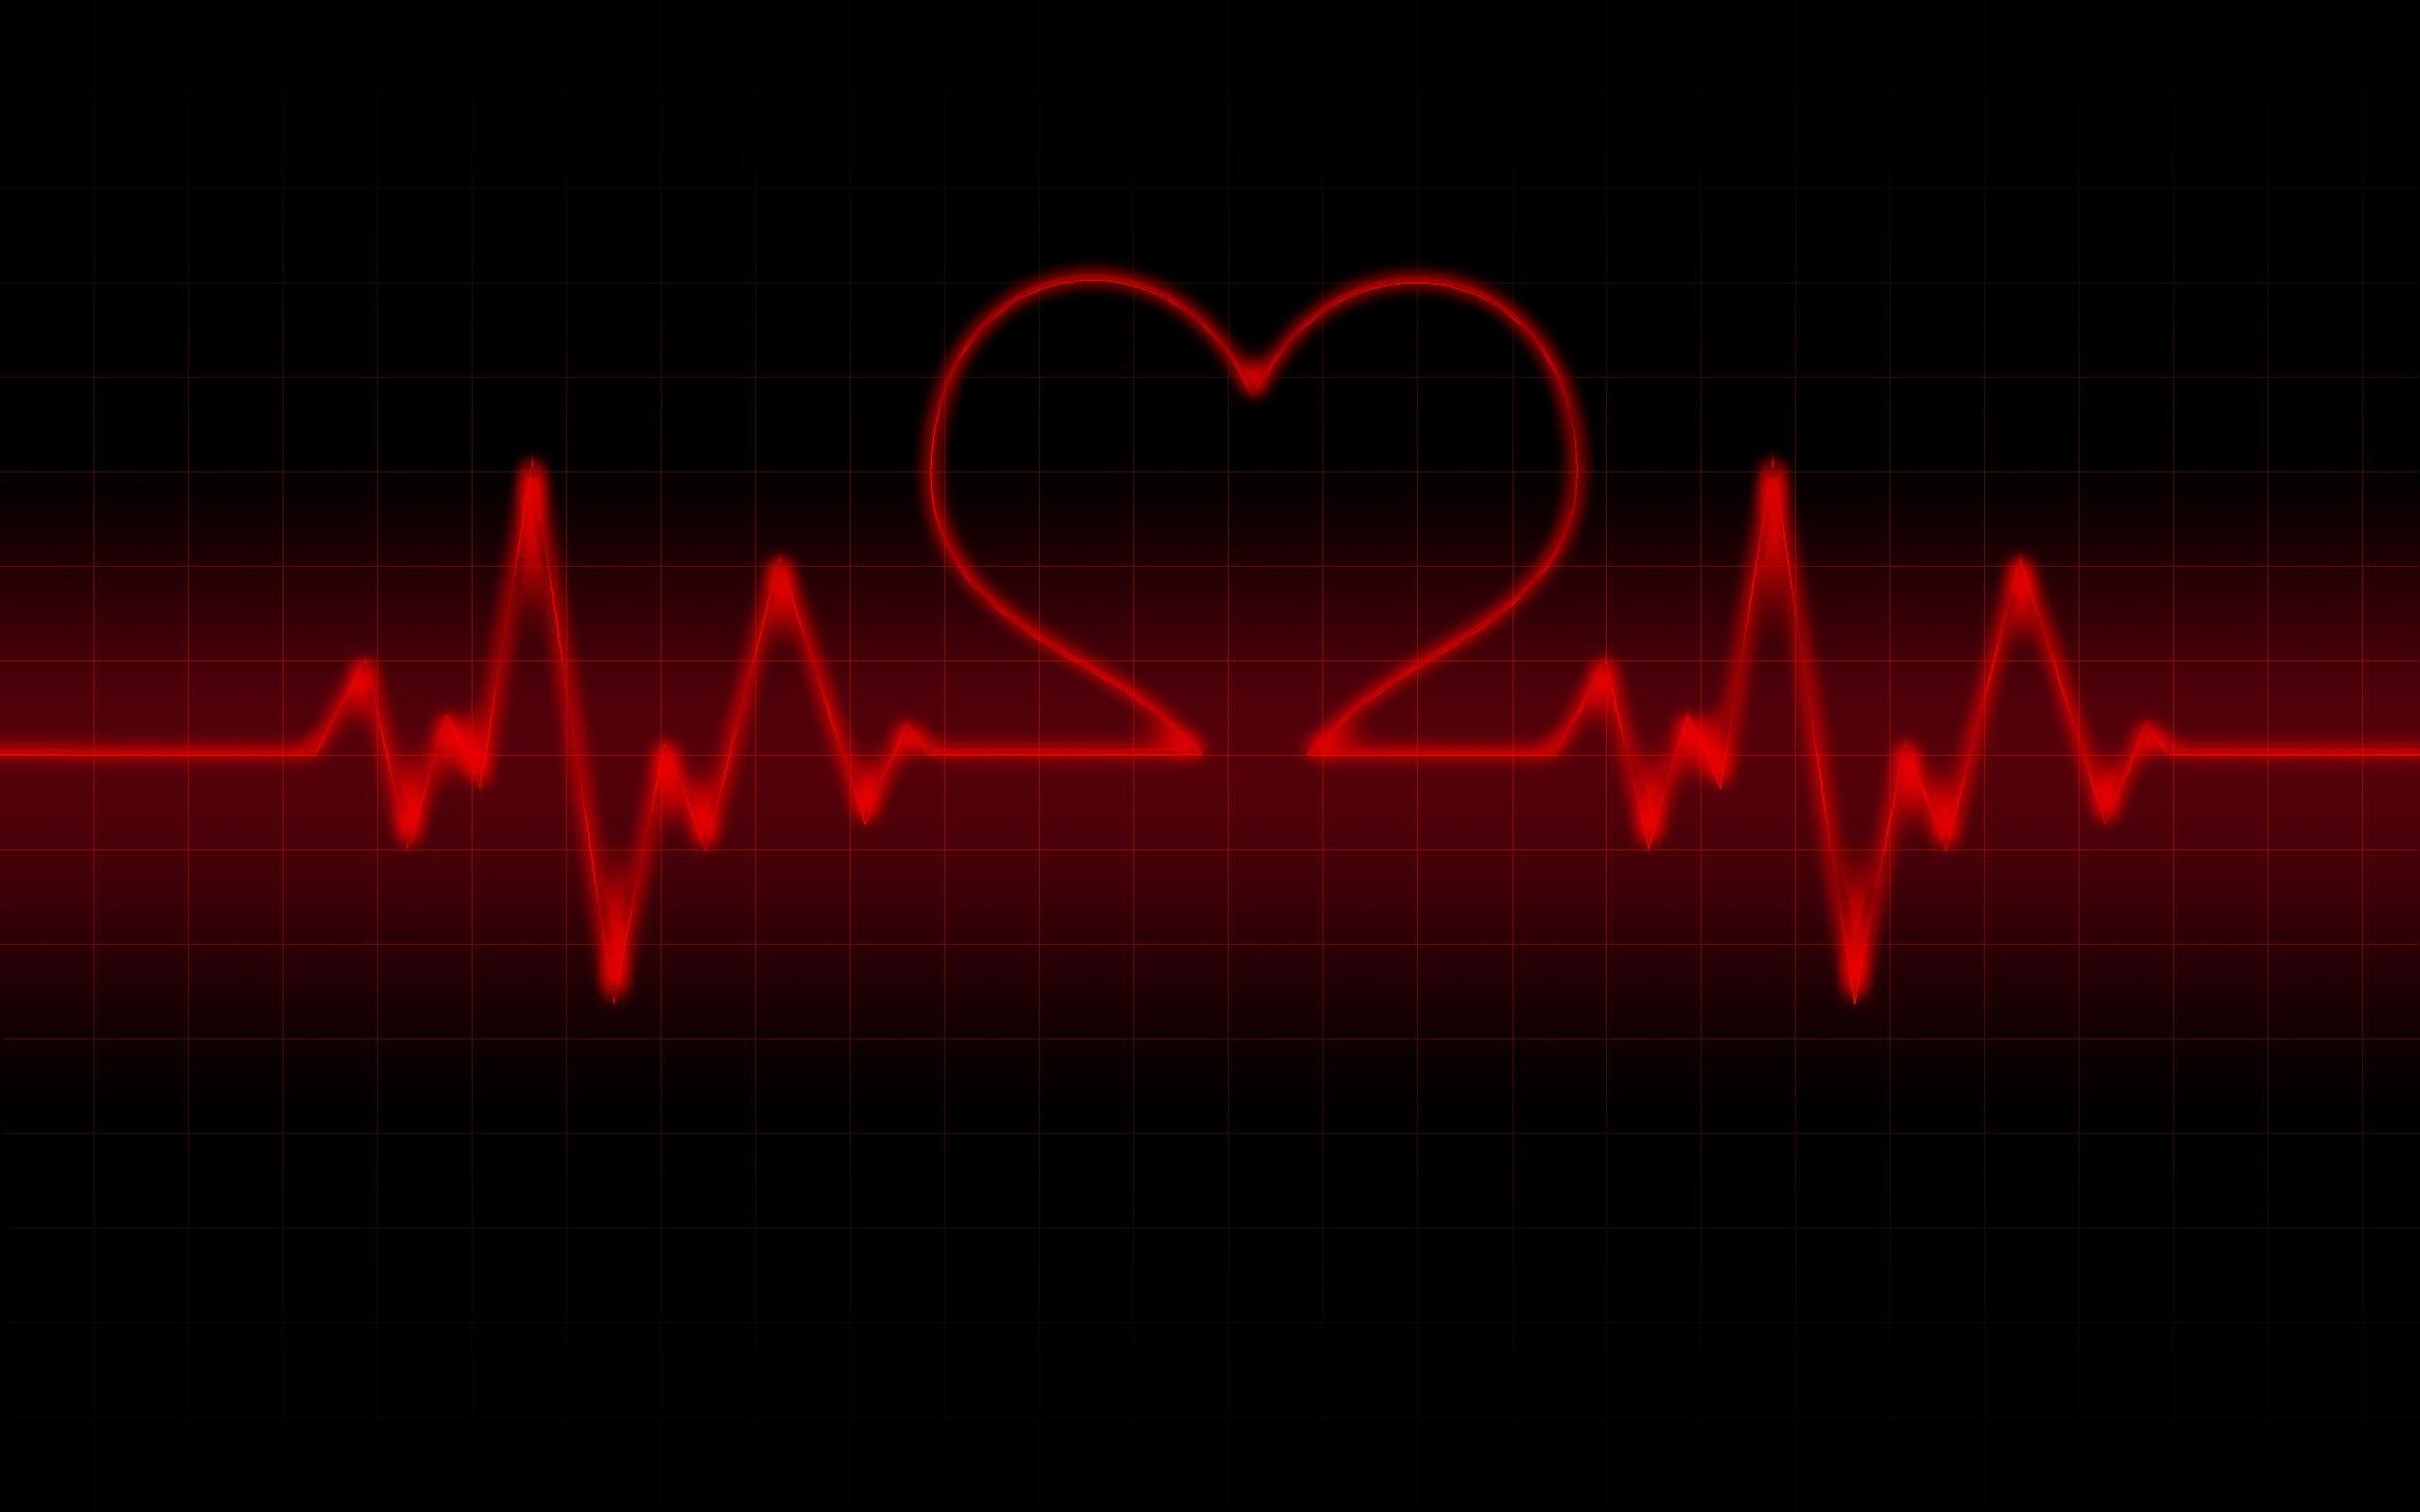 life line heart rate Wallpaper Valentine Day Red And Black Wallpapers Valentine s Day ...